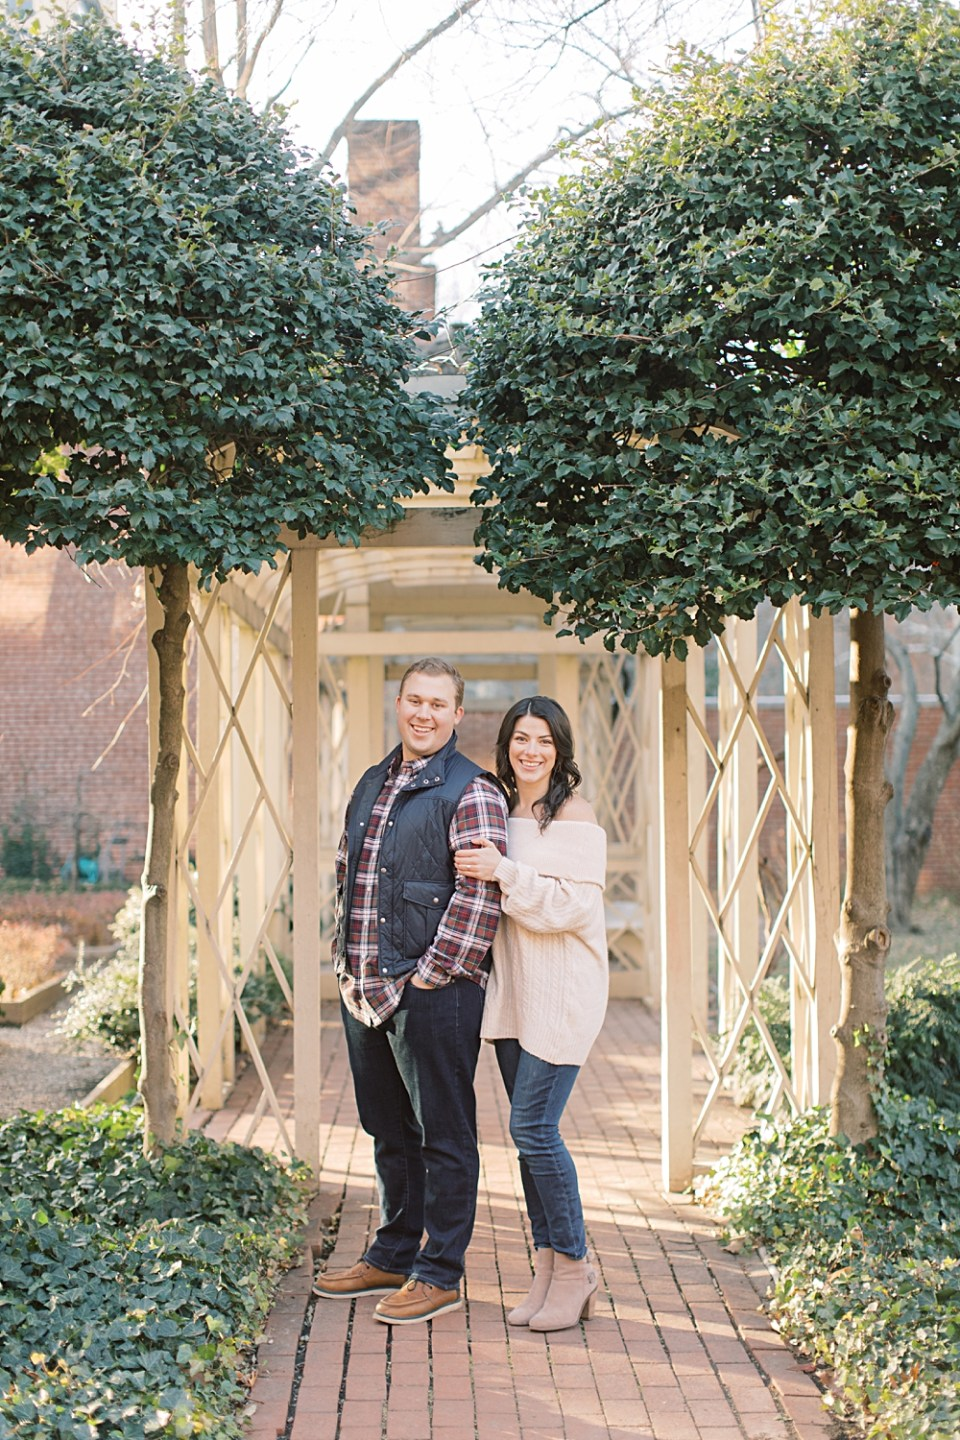 18th Century Garden Engagement Photos | Old City Philadelphia Engagement Session | Sarah Canning